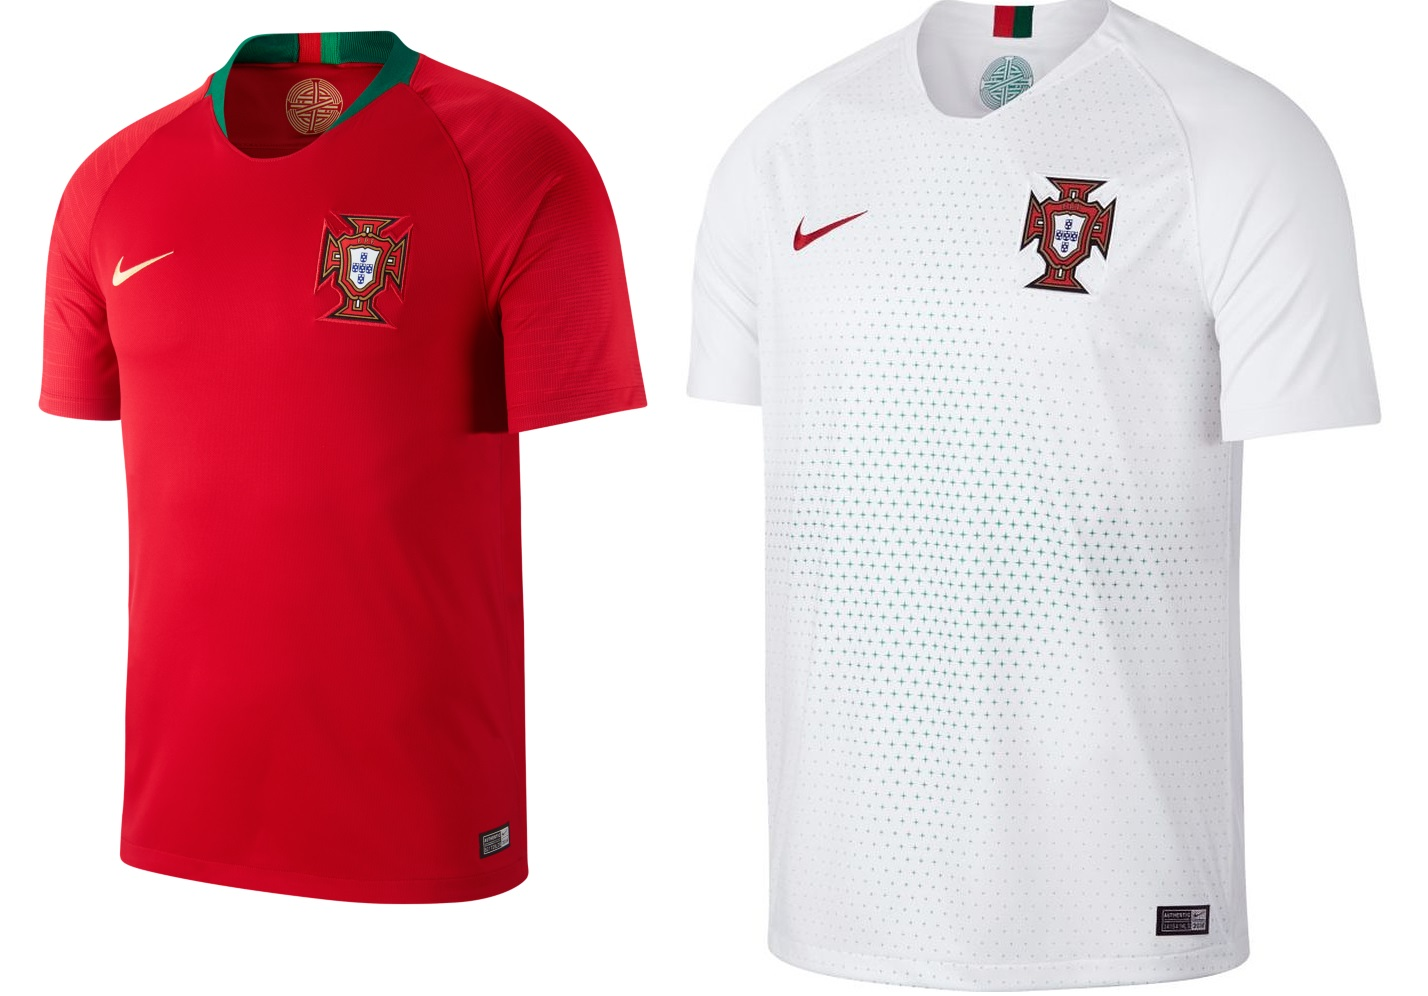 038fe44560c Euro 2016 champions, Portugal get very understated kits from Nike. Home  shirt comes in traditional red colour with gree application while the away  kit is ...